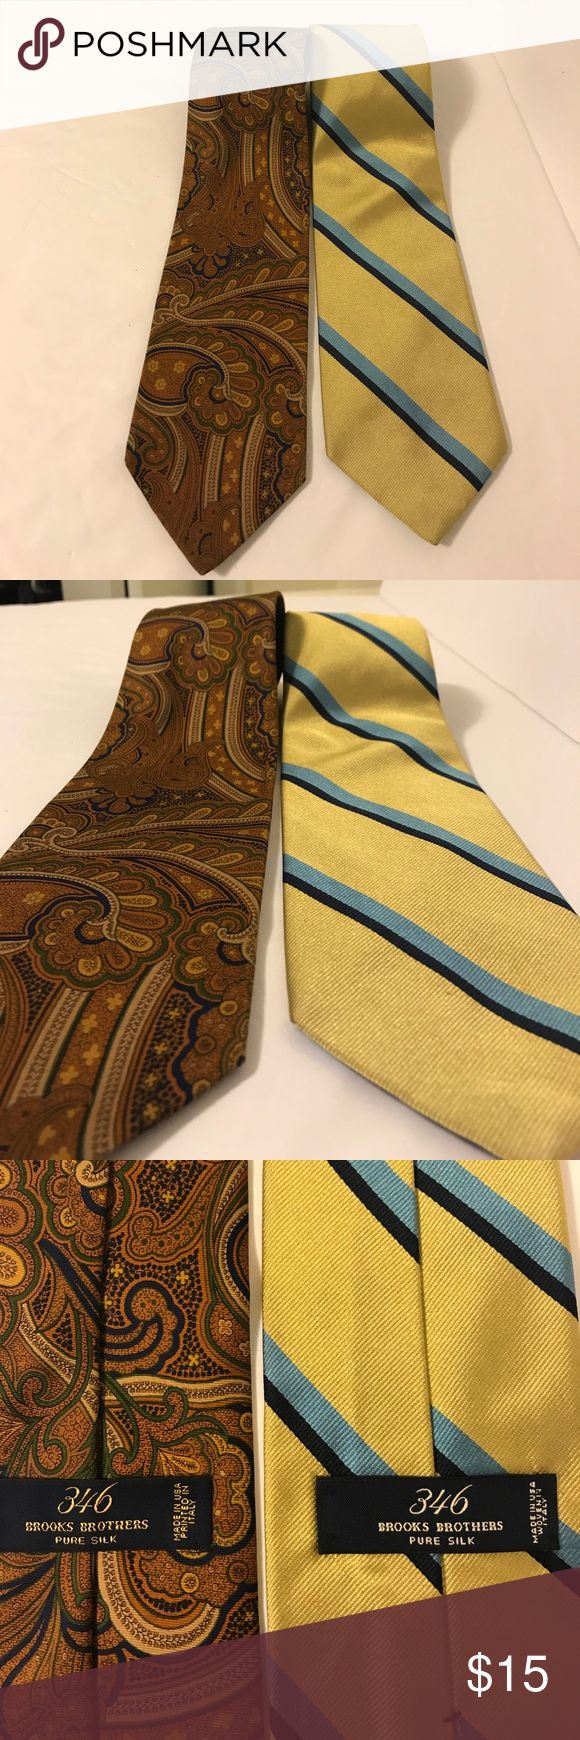 🔥 2 brooks brothers ties! Made in Italy pure silk 2 brooks brother ties! Made in Italy, pure silk! This is a killer deal Brooks Brothers Accessories Ties